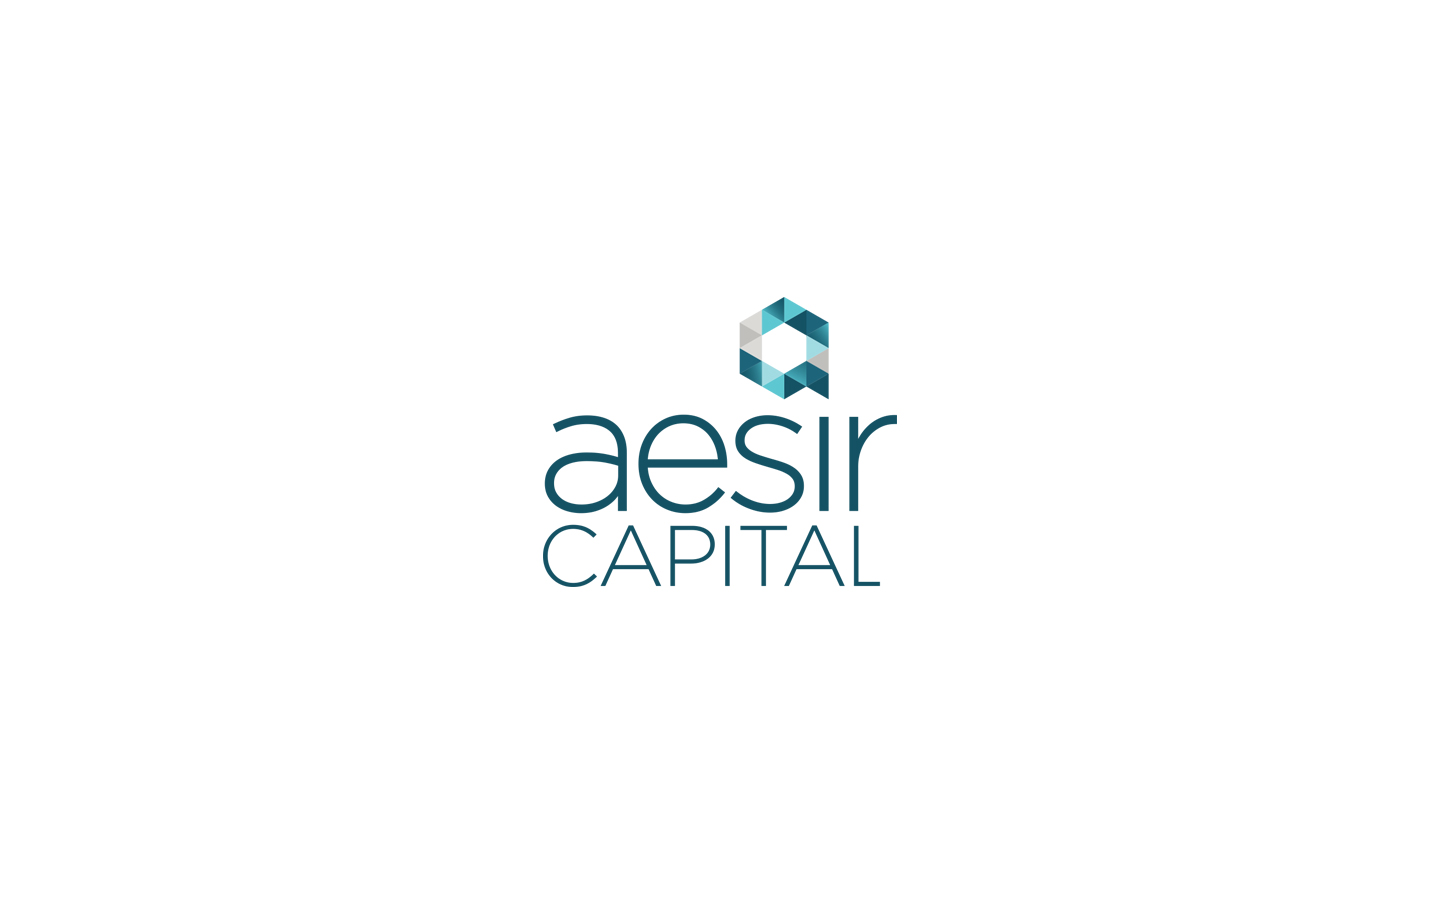 aesir capital management Brand | Identity Design | Collier Creative | Graphic Design Melbourne